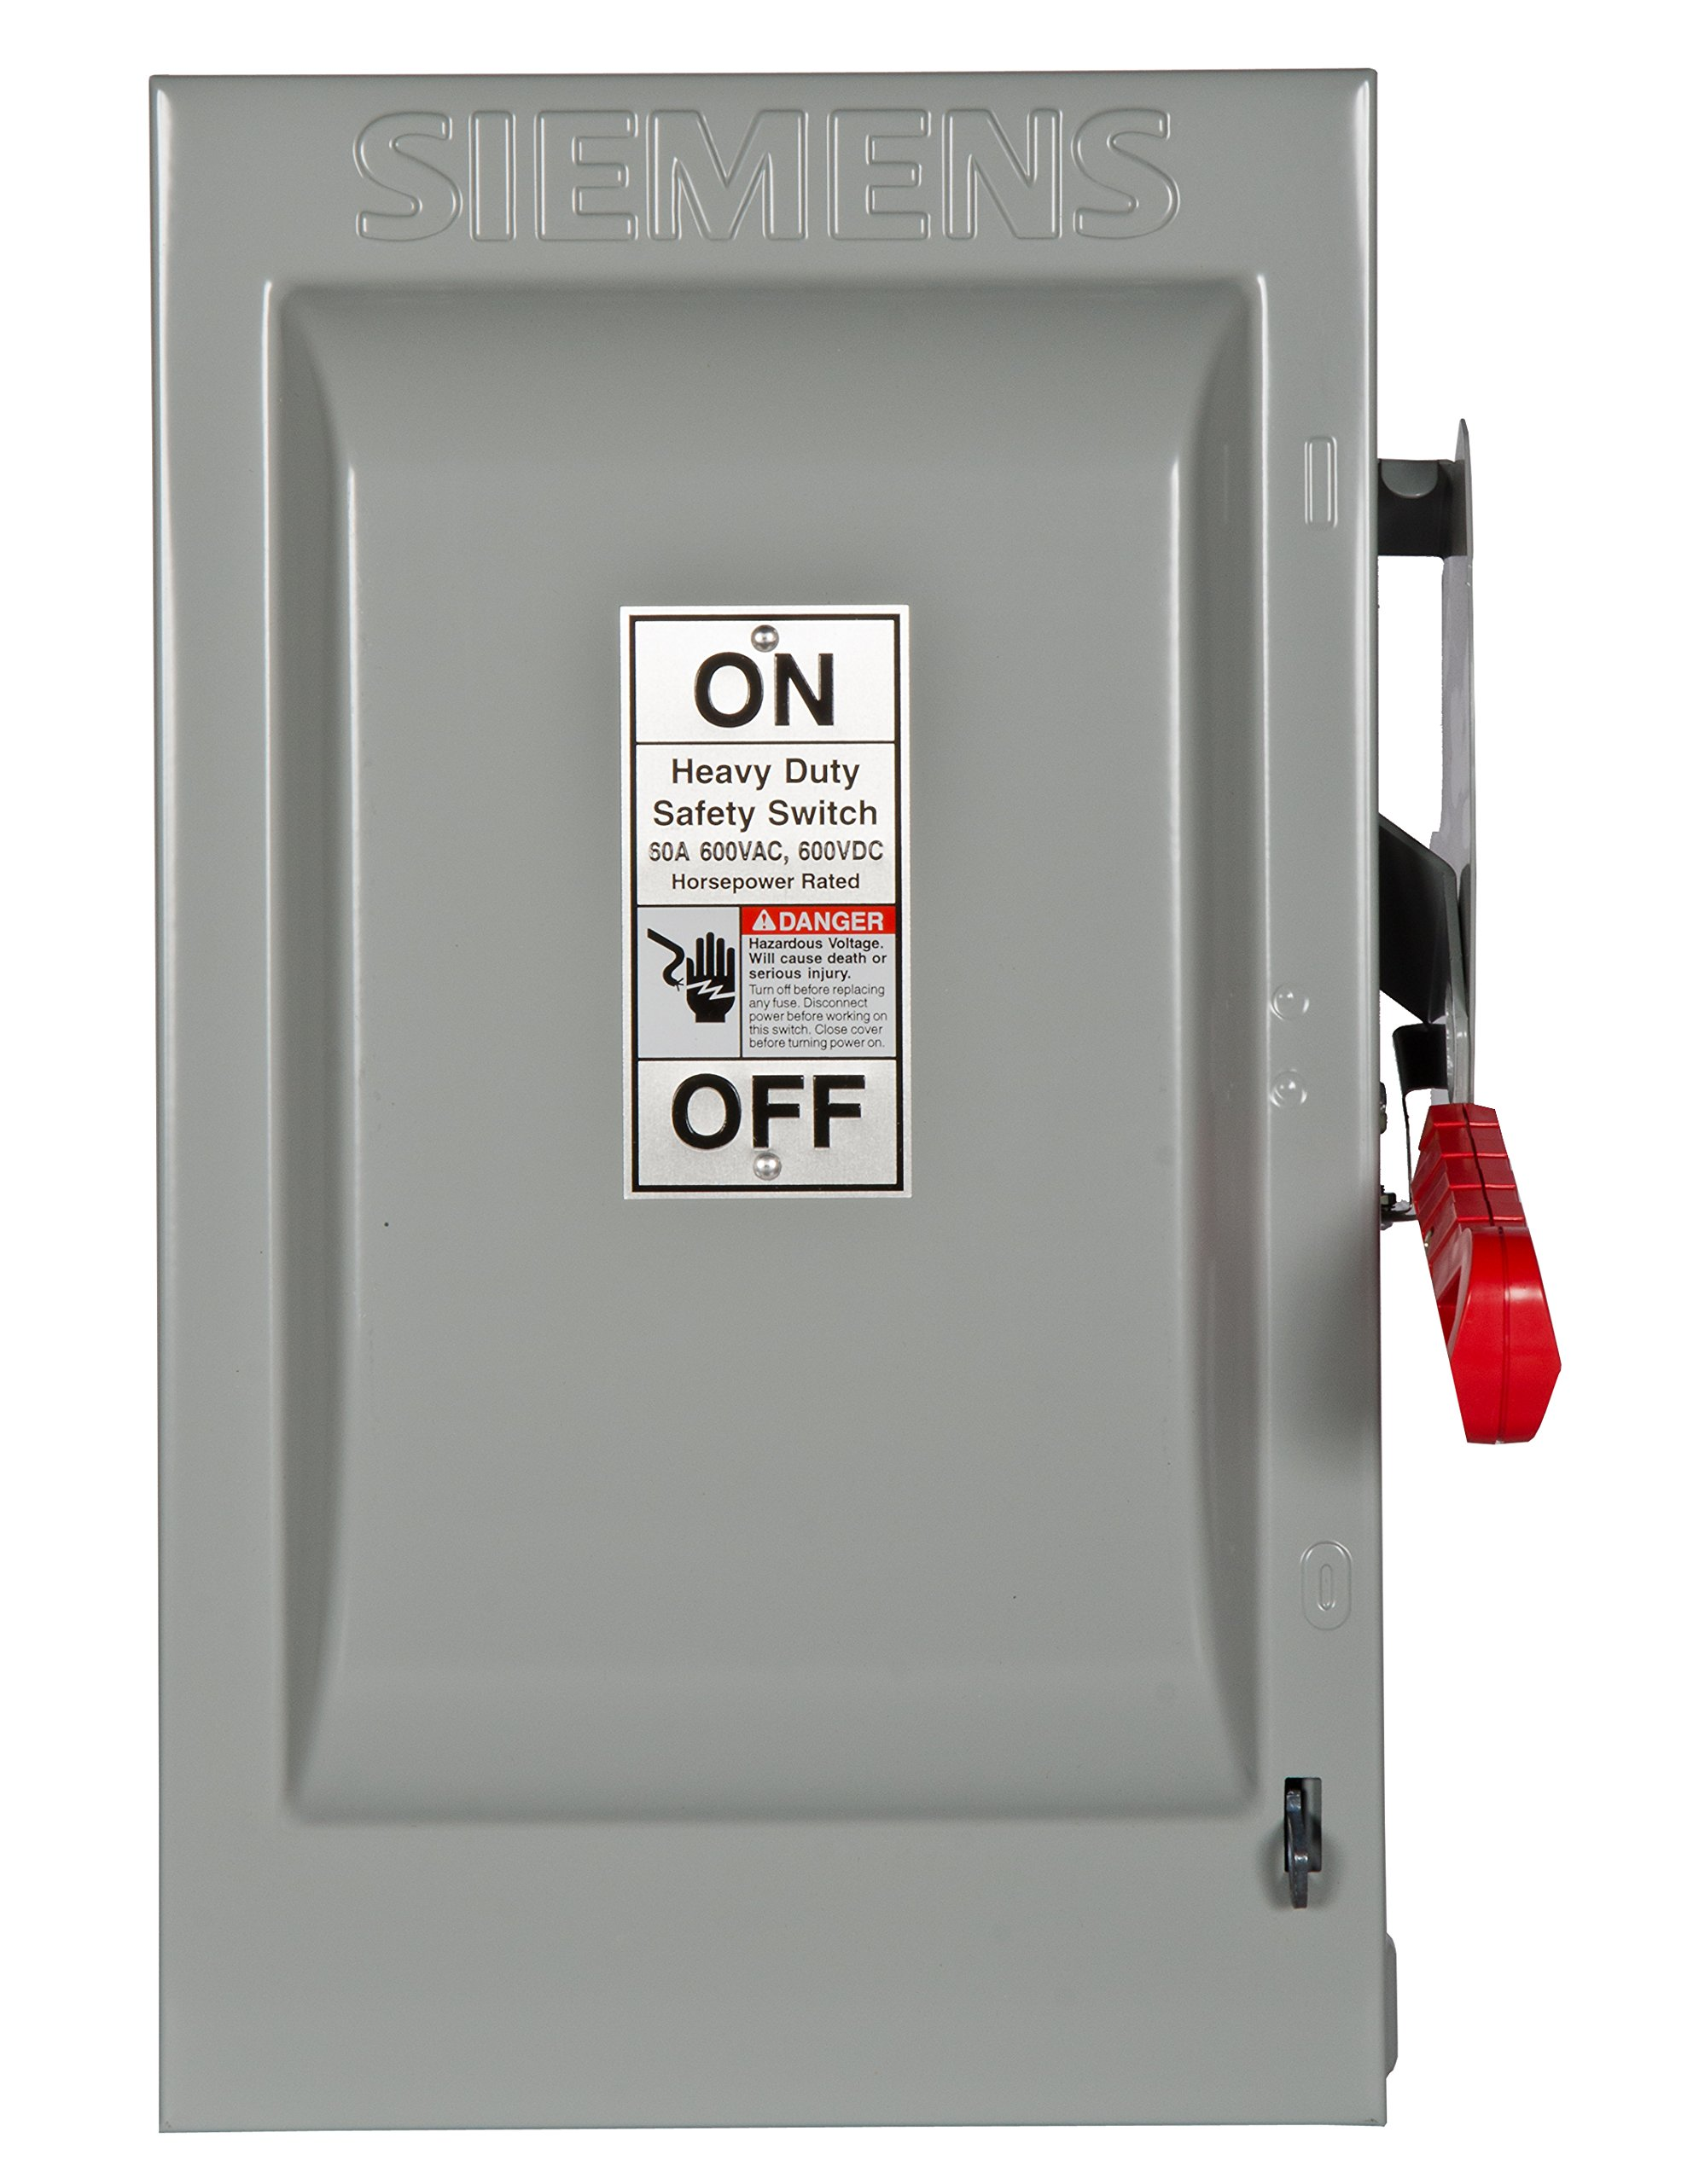 Siemens HNF362 60-Amp 3 Pole 600-volt 3 Wire Non-Fused Heavy Duty Safety Switches